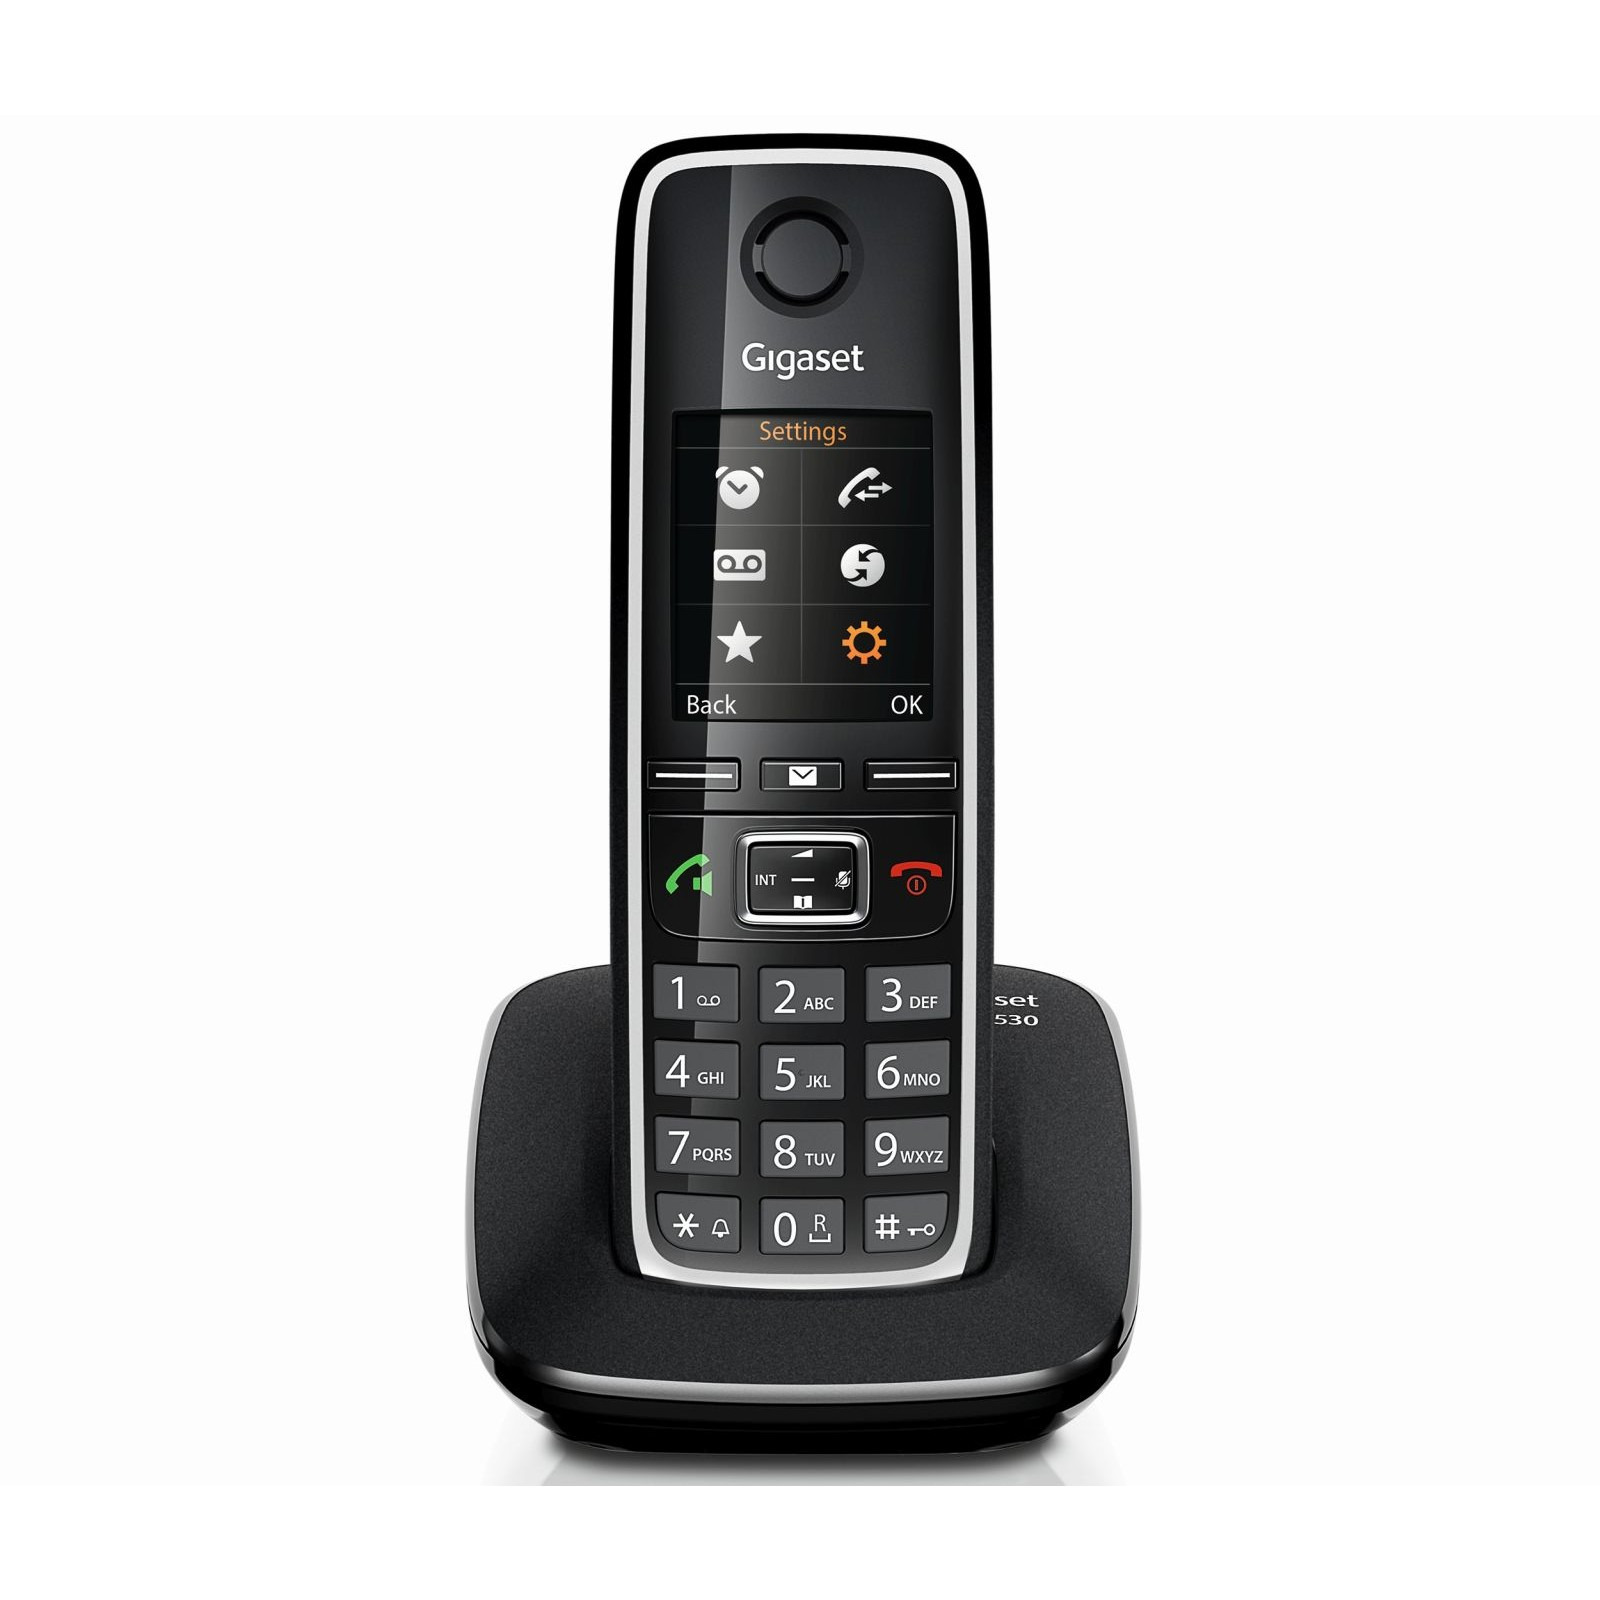 siemens gigaset c530 digital cordless phone ligo. Black Bedroom Furniture Sets. Home Design Ideas